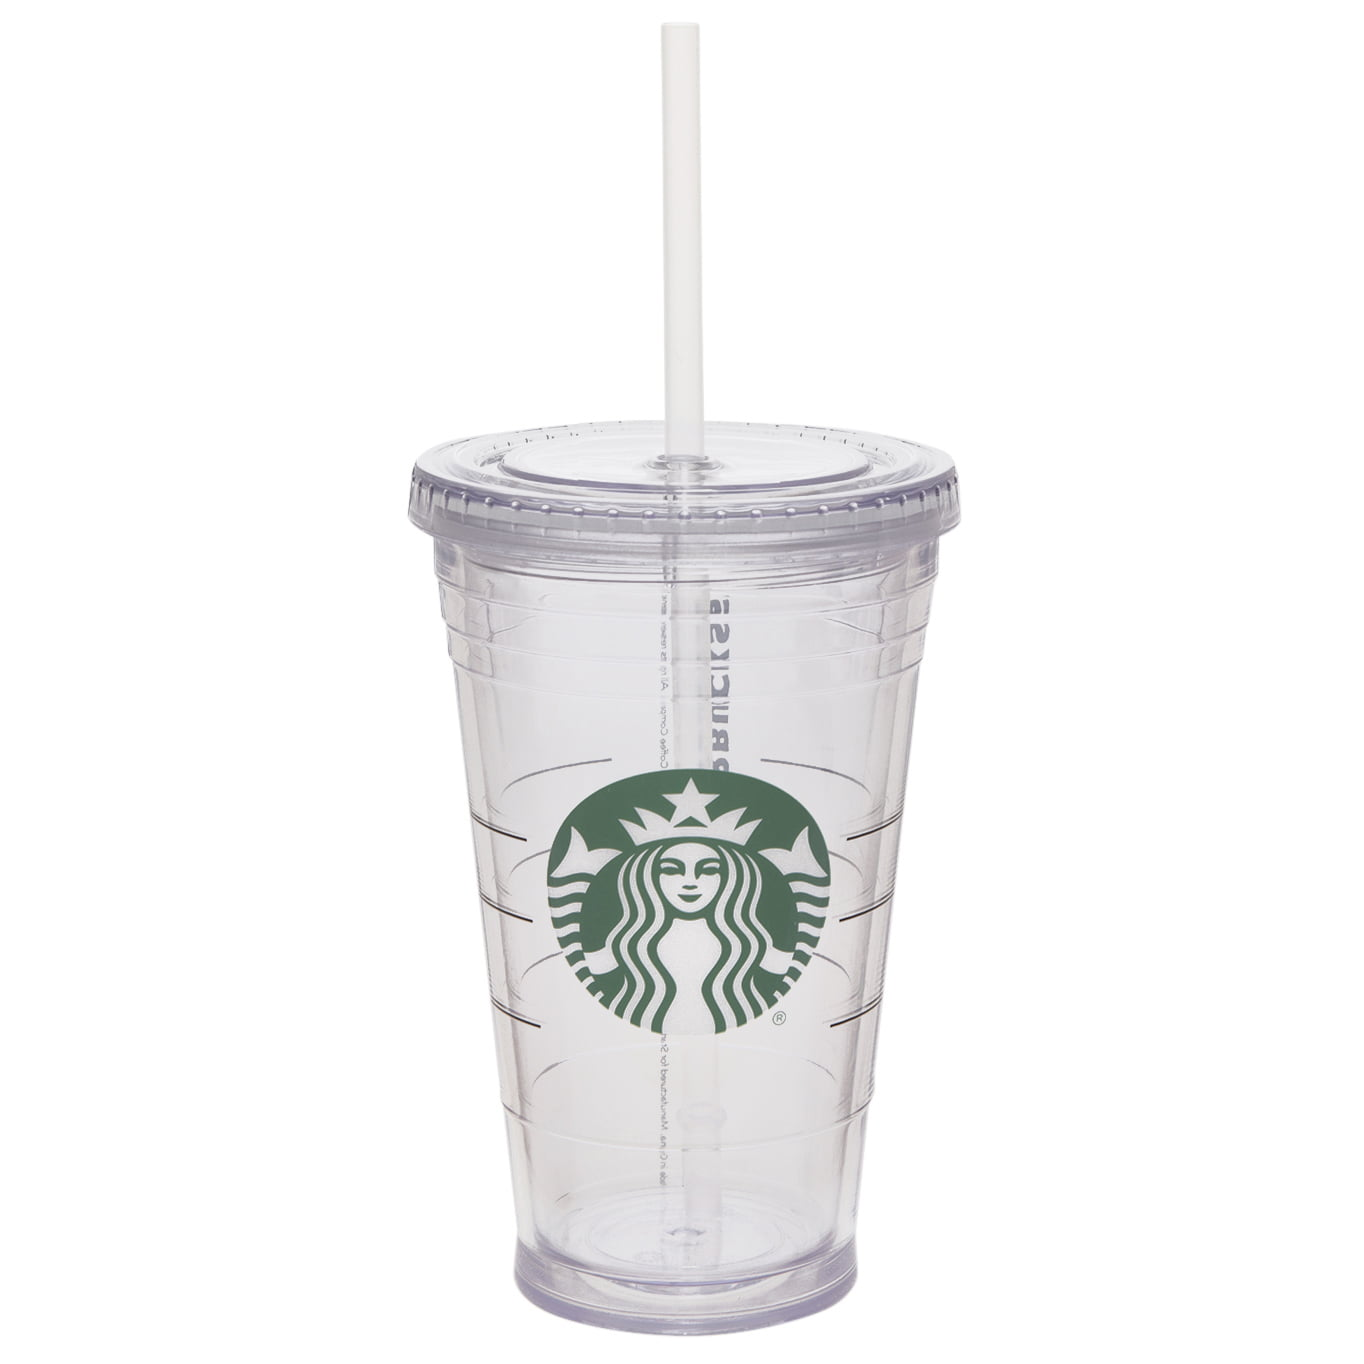 Starbucks 16oz Tumbler With Straw Clear